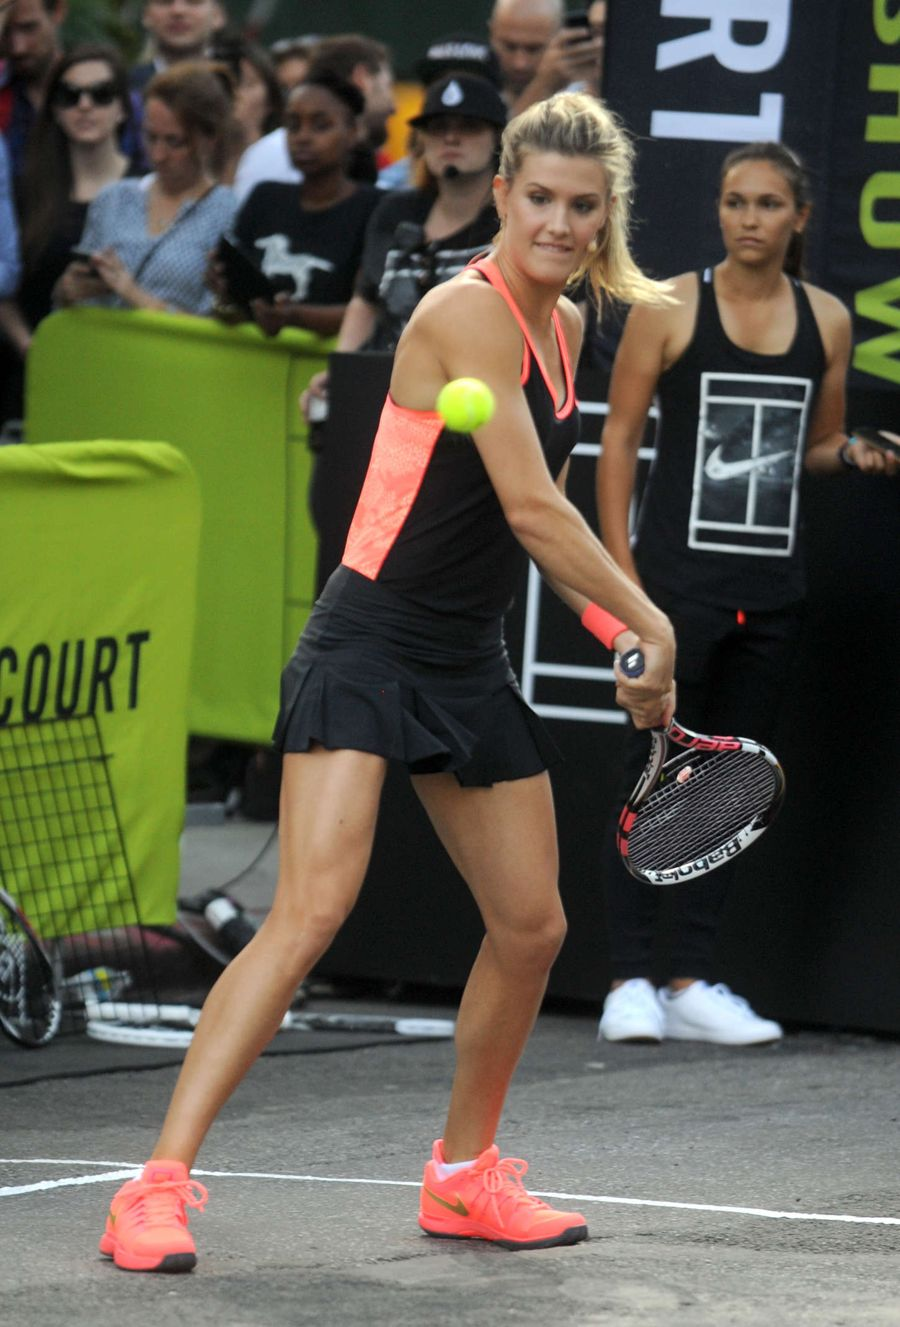 Eugenie Bouchard - Nike's 'NYC Street Tennis' Event in NYC